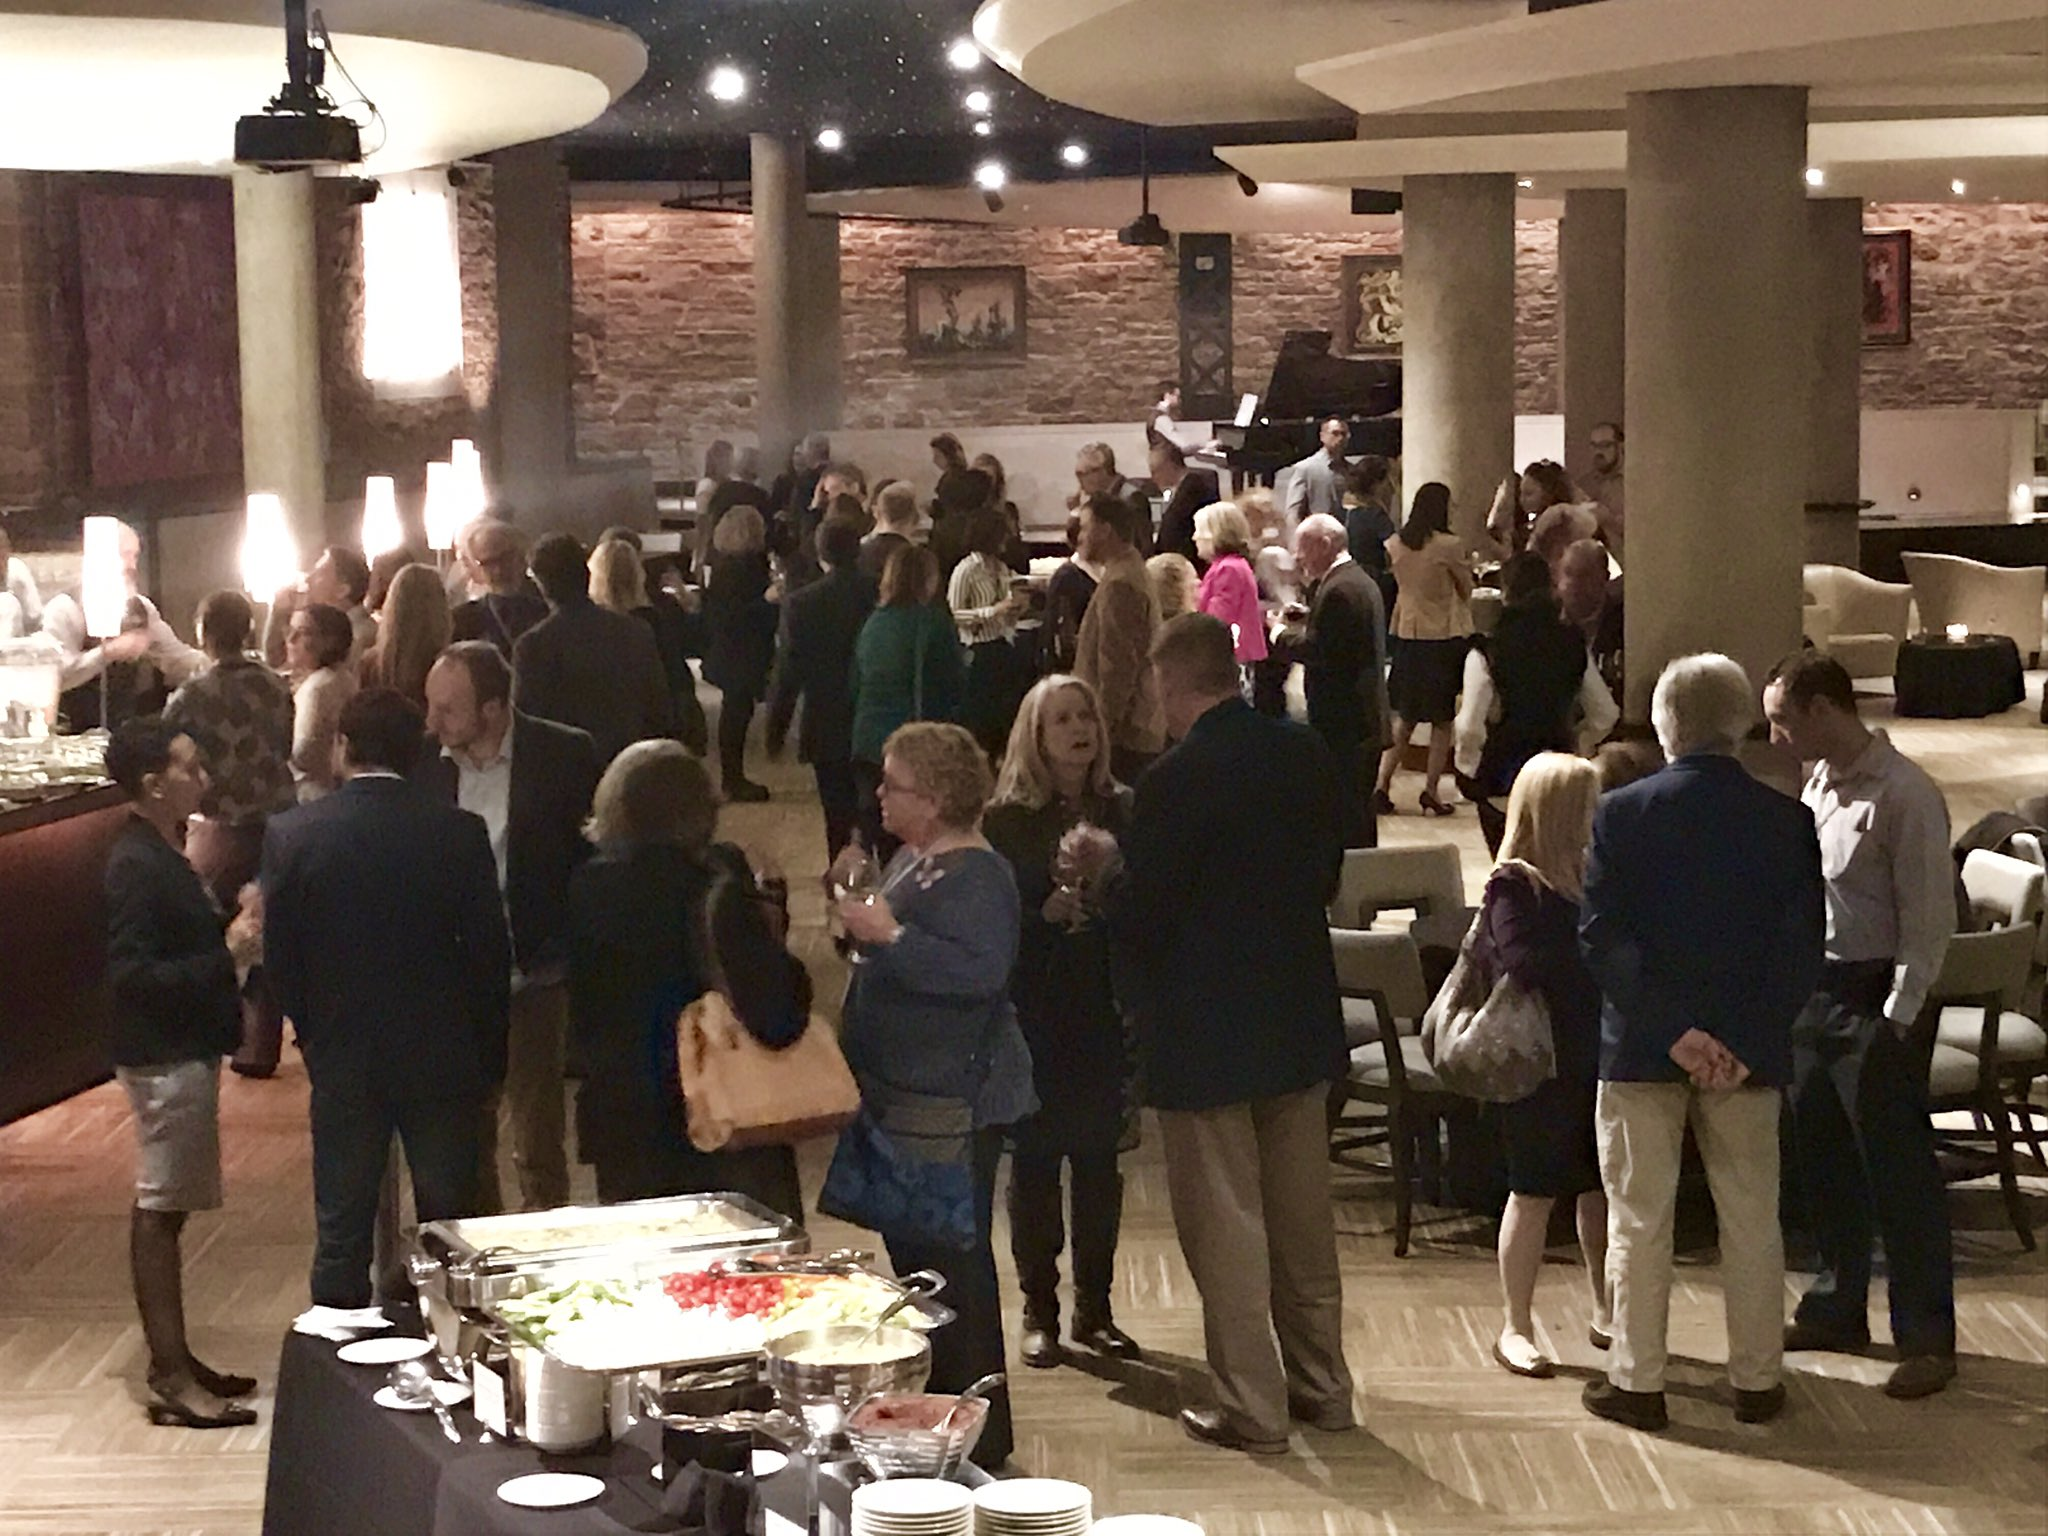 Thanks to everyone who joined us for the #AEPNF16 Opening Night Reception! https://t.co/wmyvYccJfJ